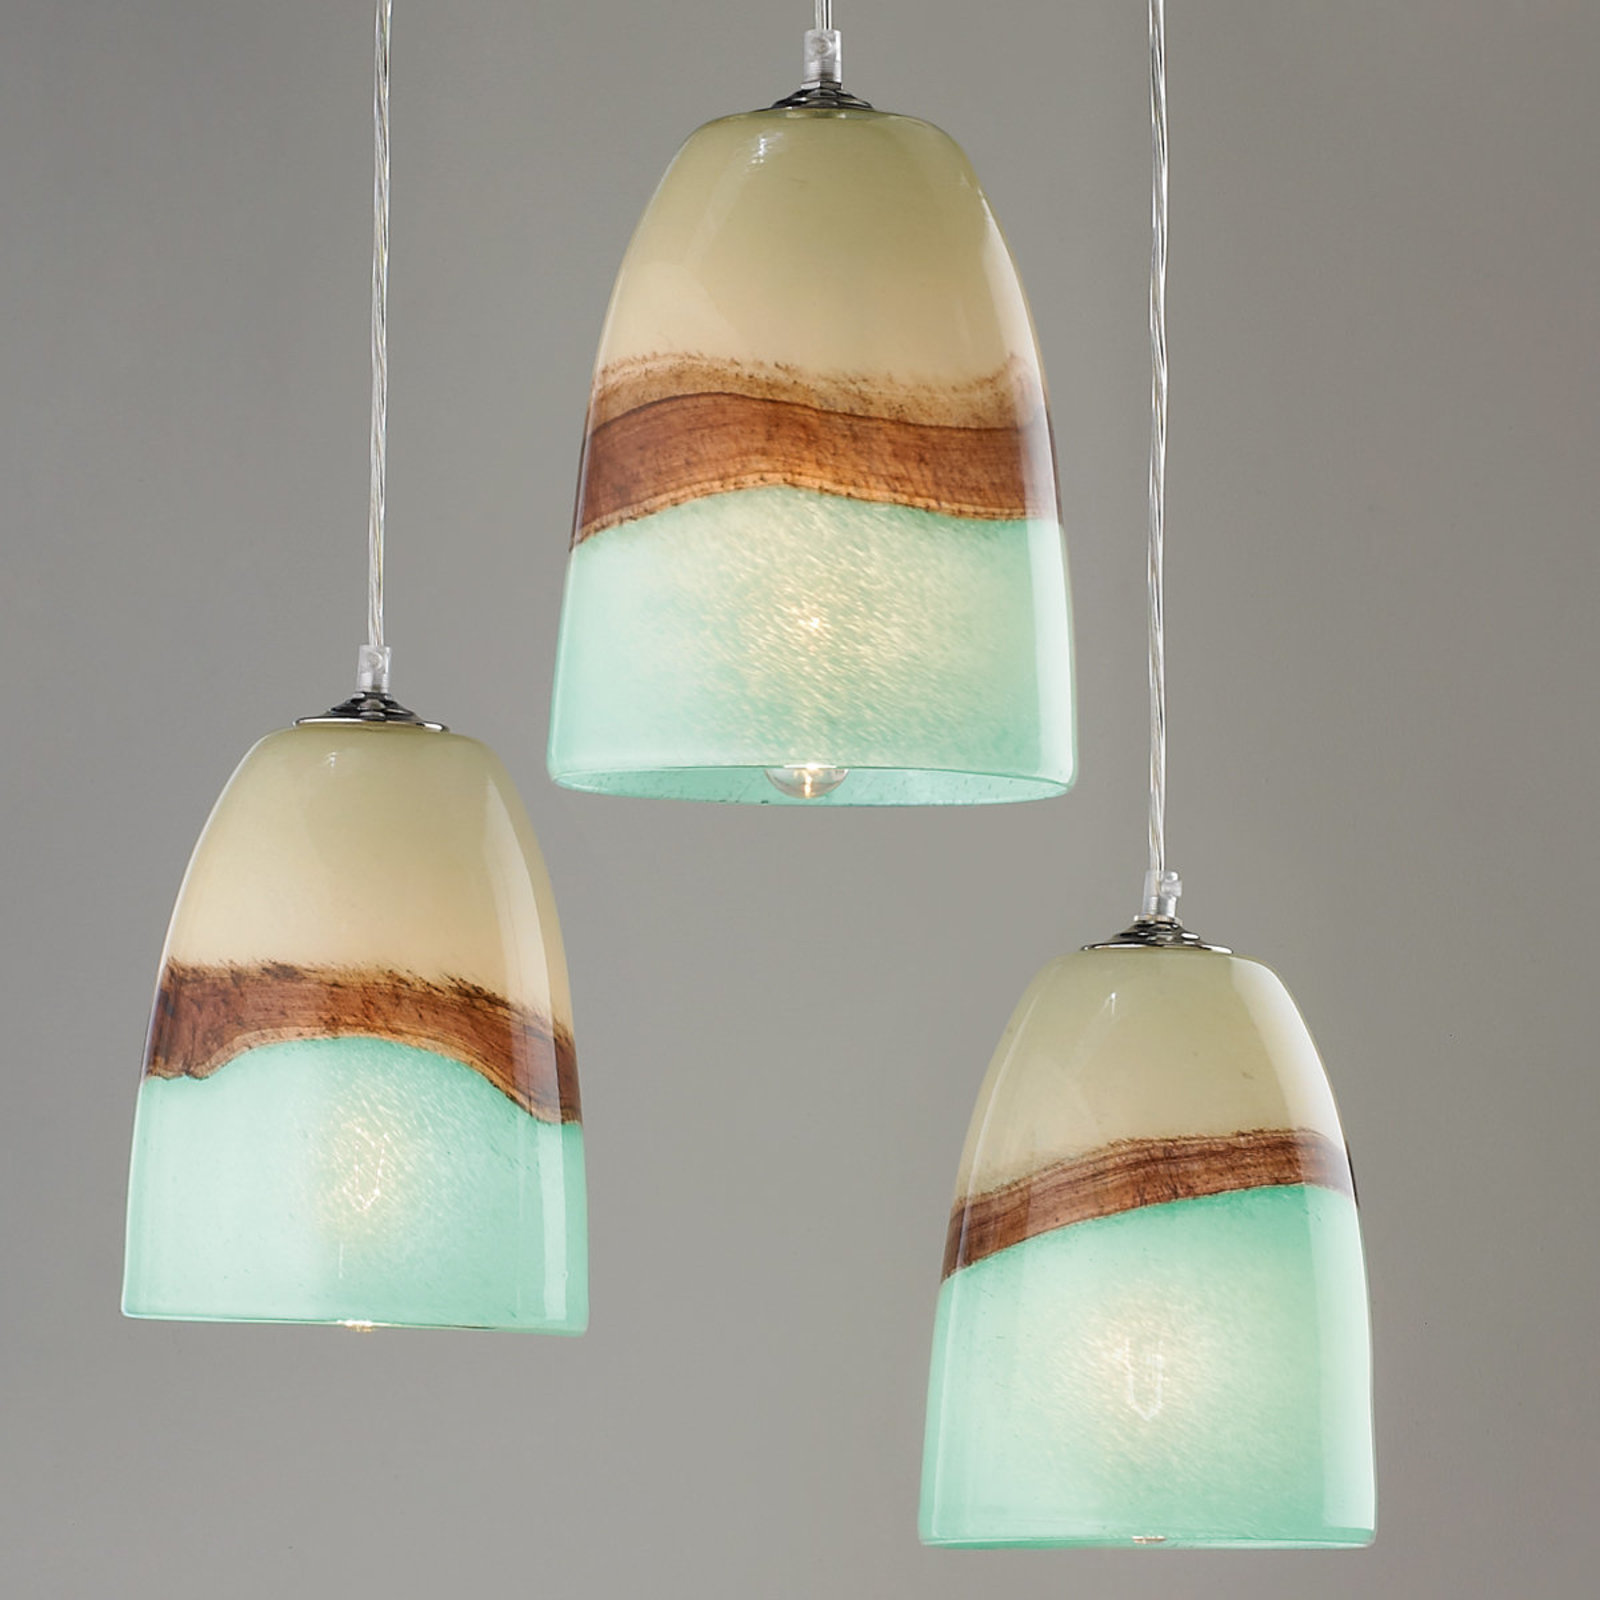 pendant light shades strata art glass pendant light aqua_and_brown FZVKYQT